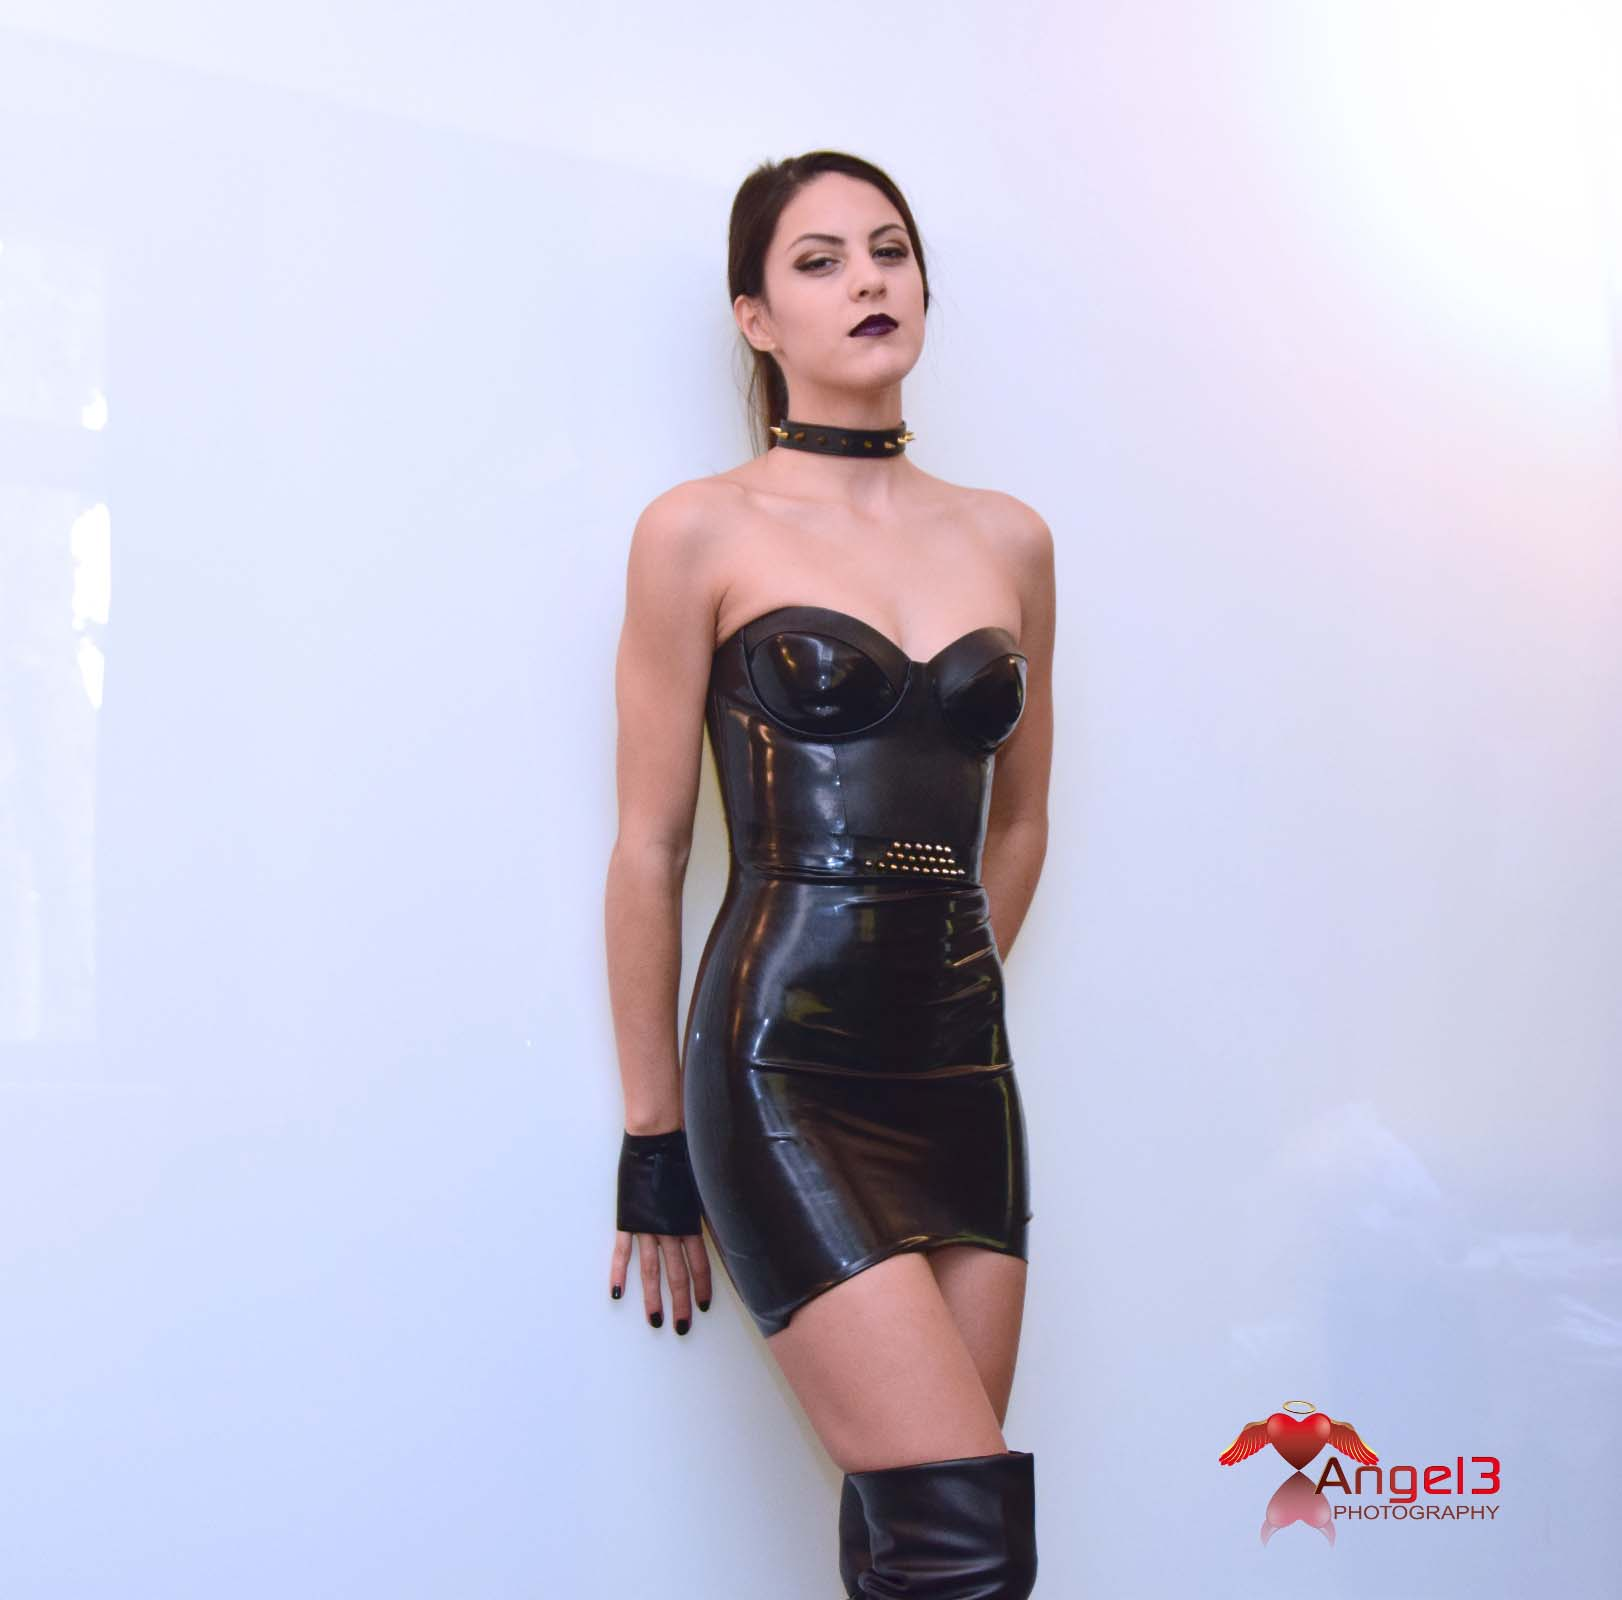 Www Glamour De Carolina Abril Mistress - Angel3